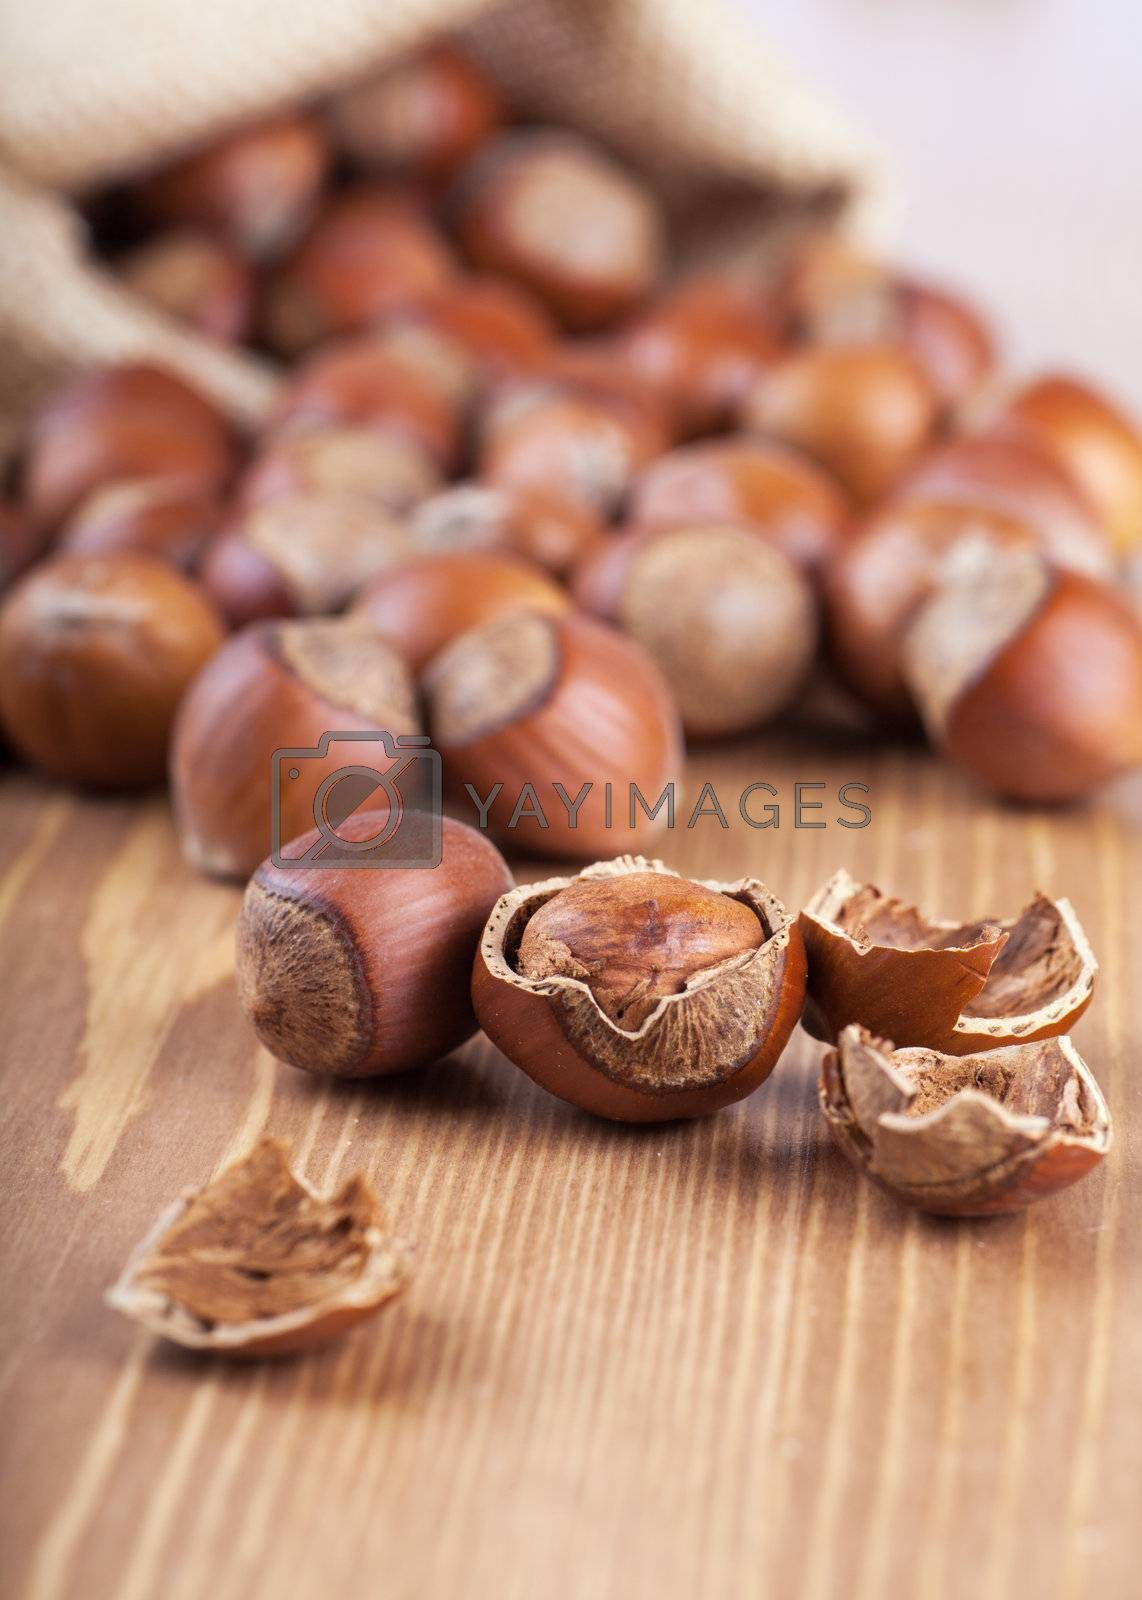 Closeup view of hazelnuts on a wooden table